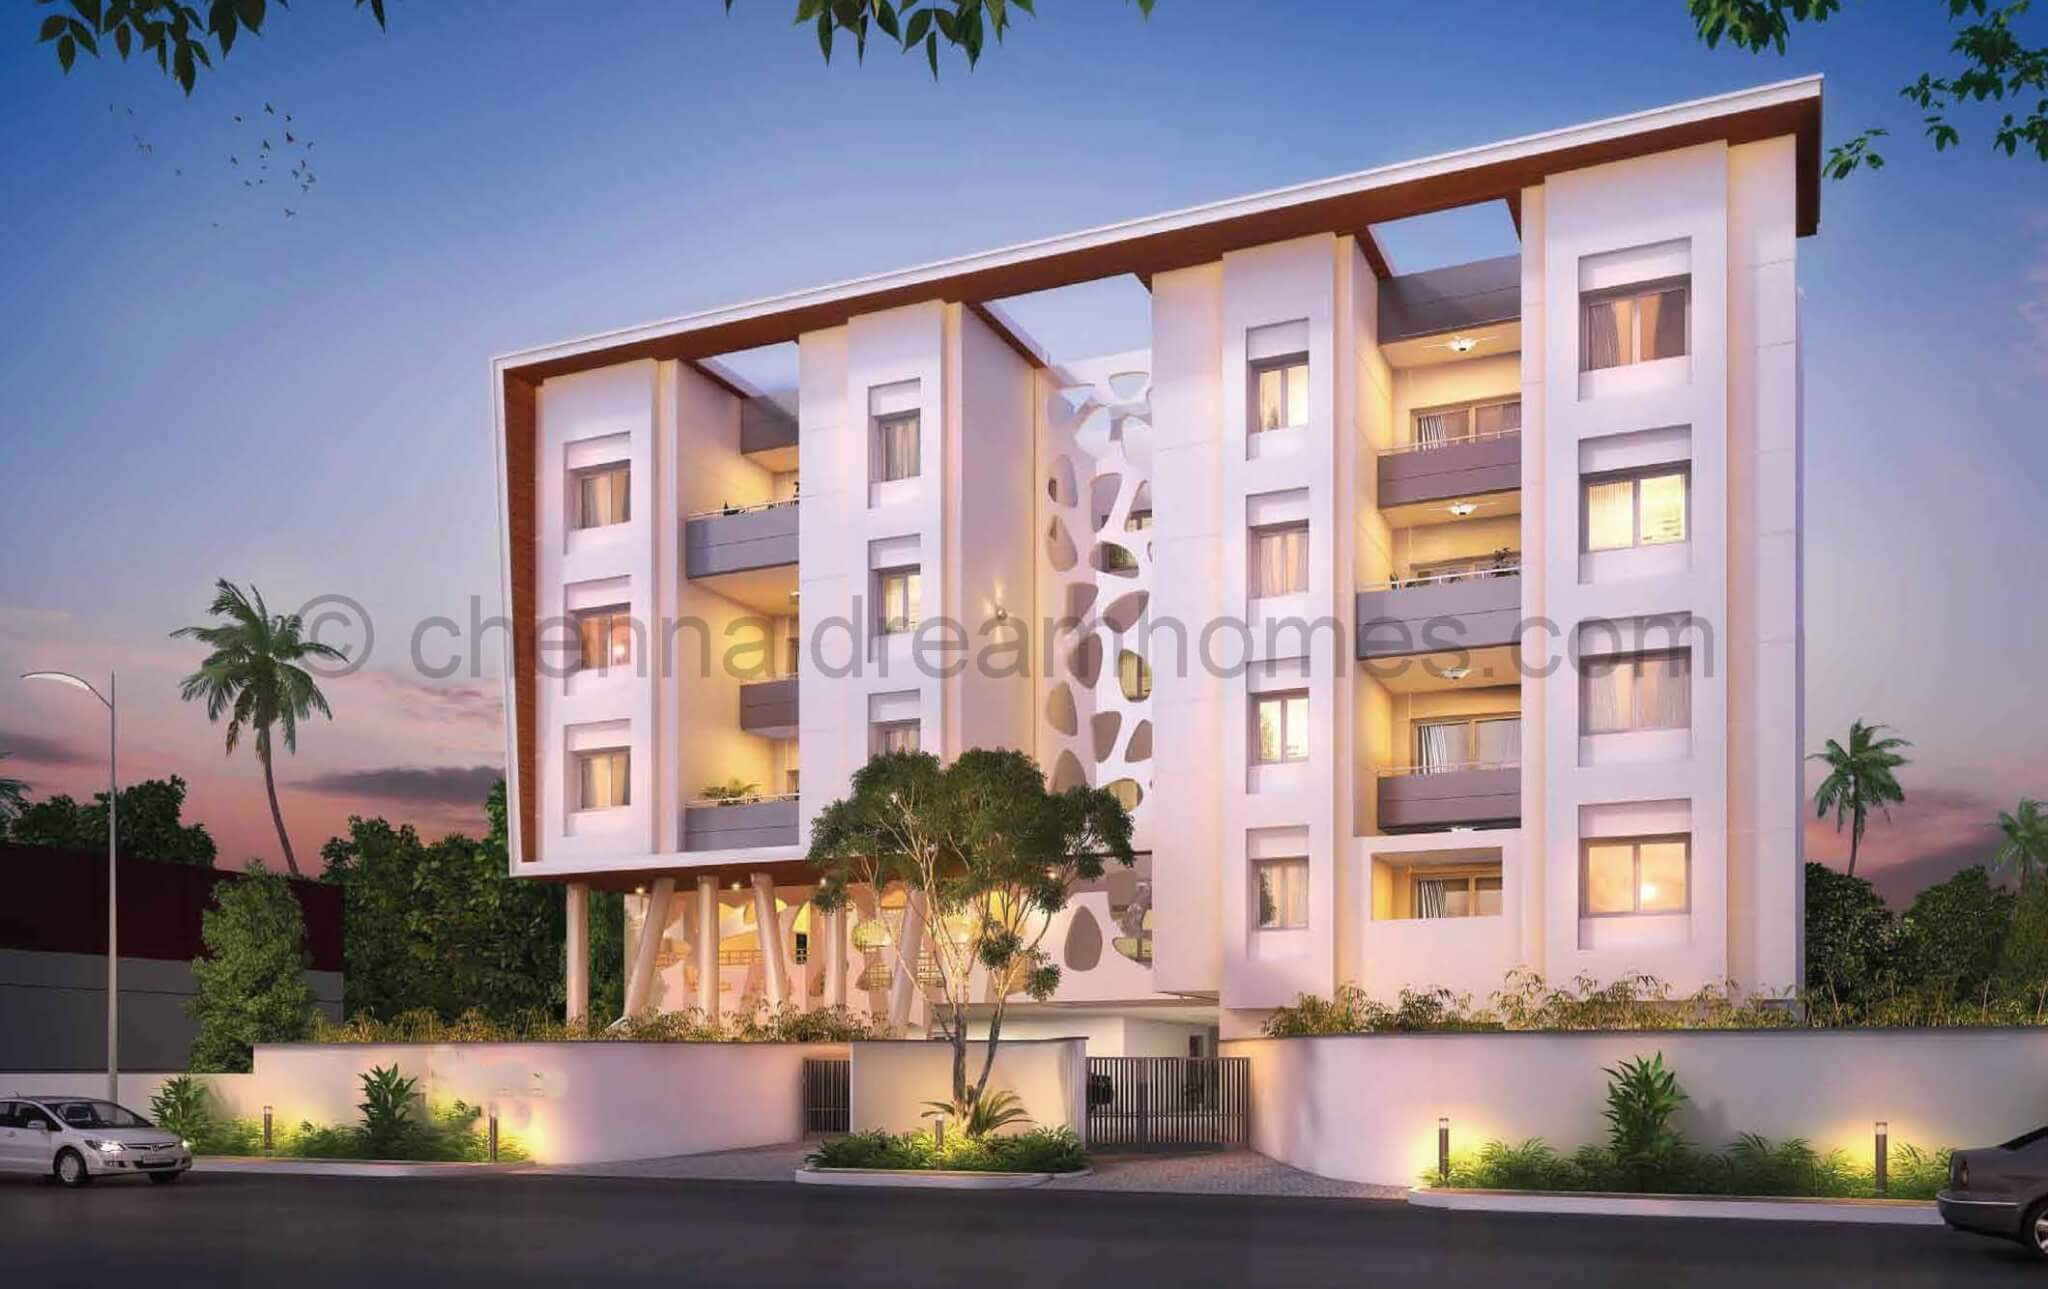 Nungambakkam flats 3 bhk premium lifestyle apartments for sale for 3 bedroom apartments in chennai